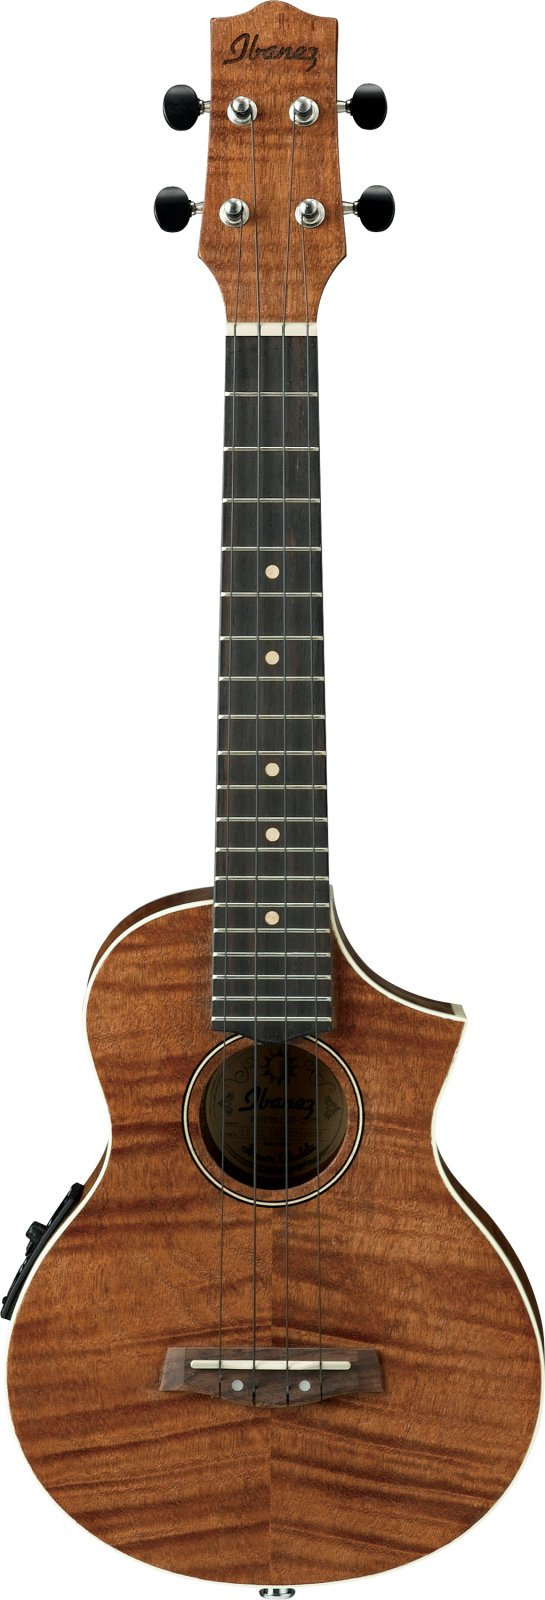 Ibanez UEW15E Acoustic/Electric Flamed Mahogany Concert Ukulele with Cutaway